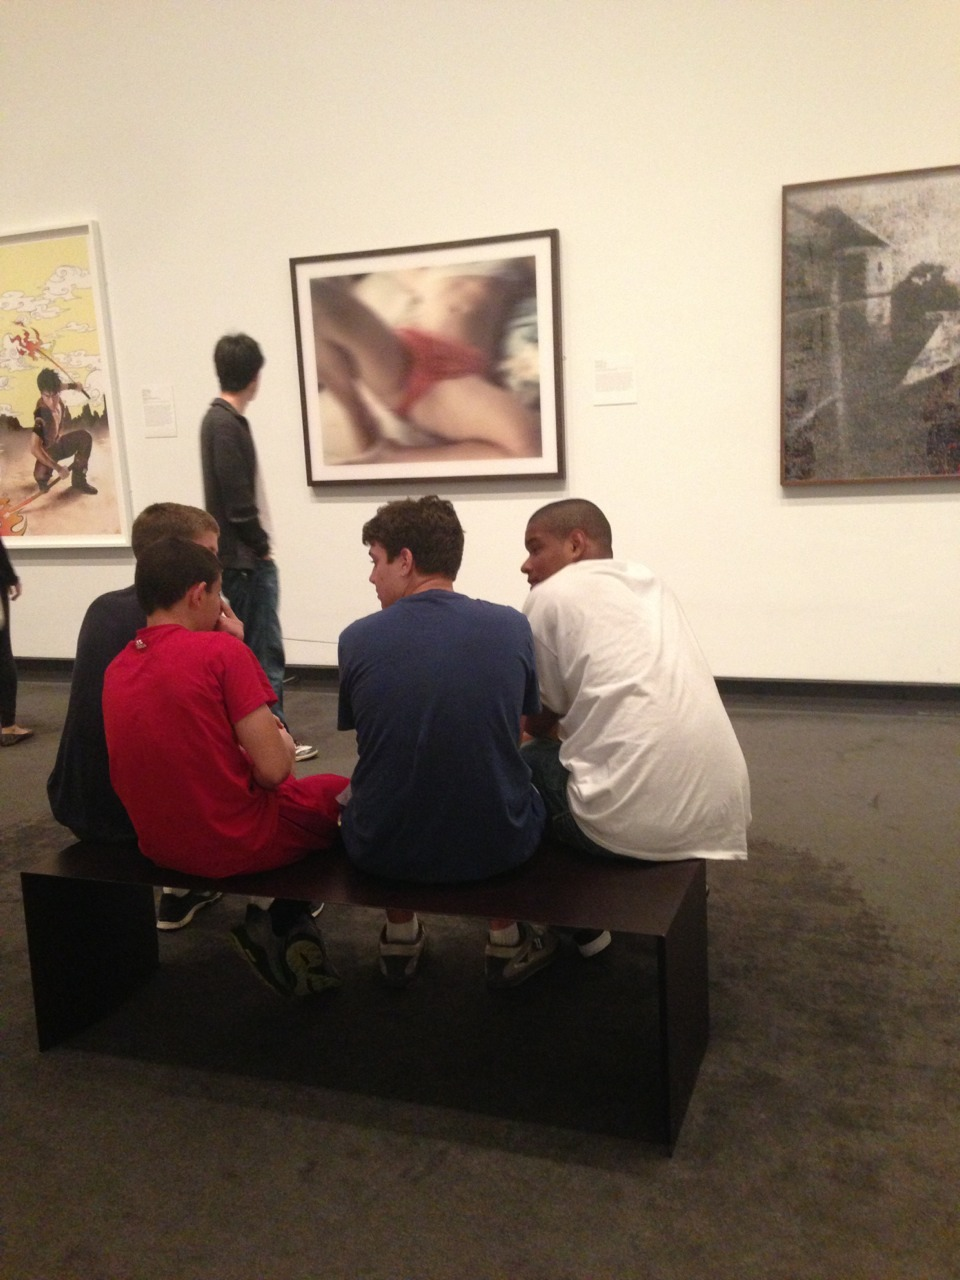 actionjacksonlovesbbq:  Four Teenage Boys And A Thomas Ruff, 2013